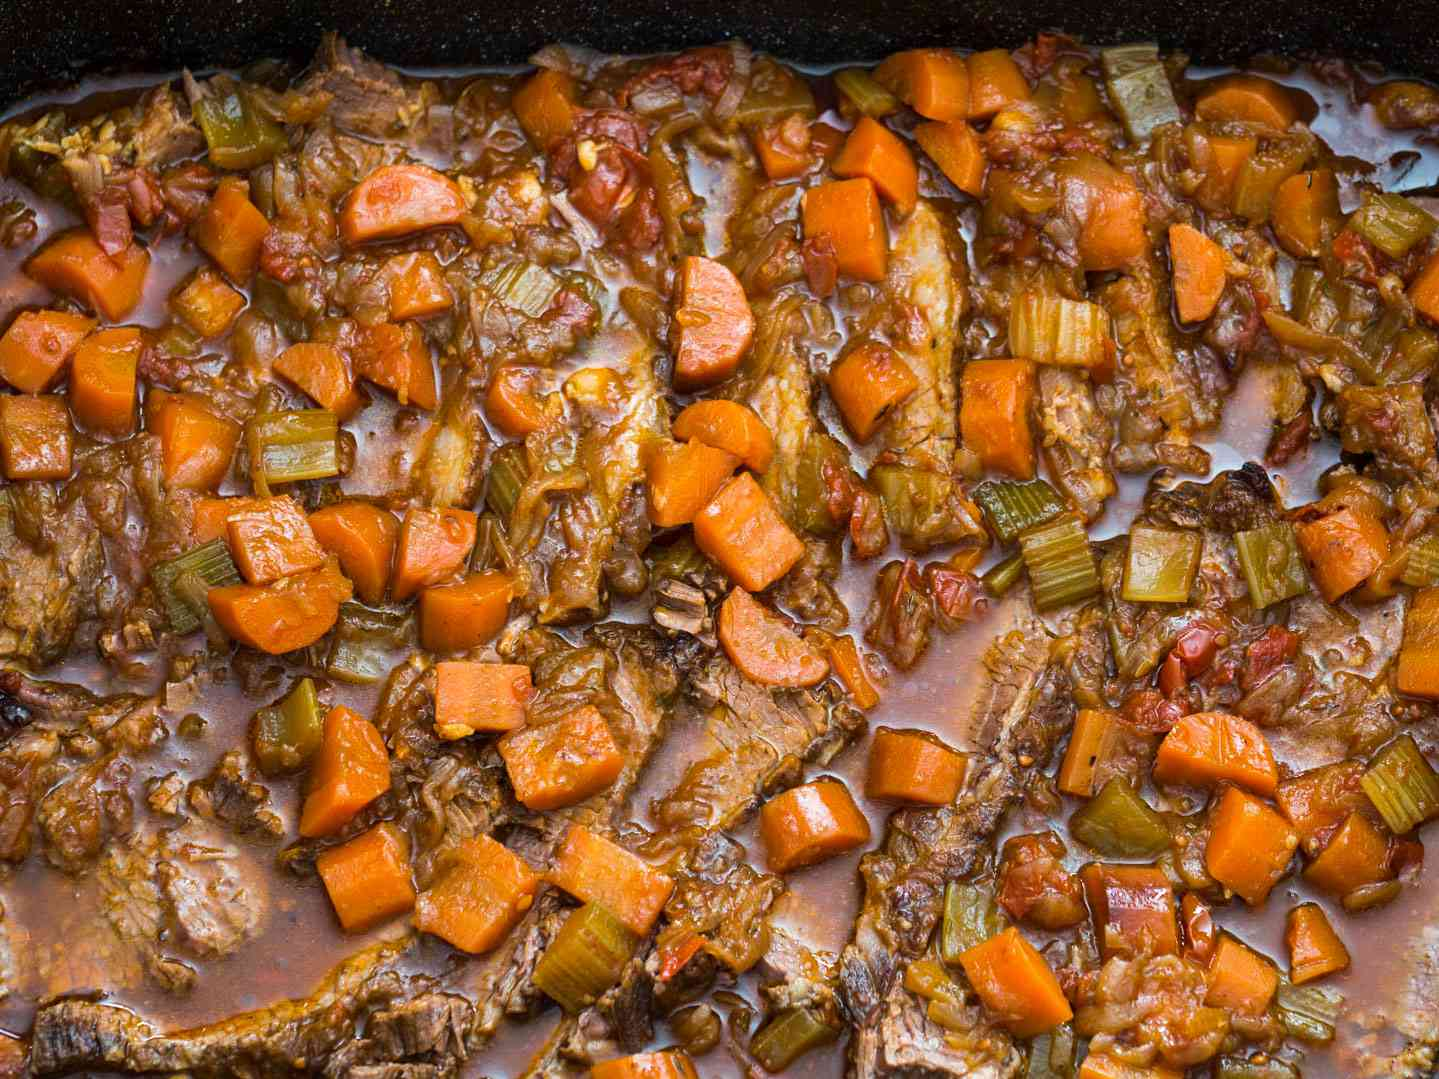 Overhead shot of Jewish-style braised brisket in a sauce with carrots, onions, and other aromatics